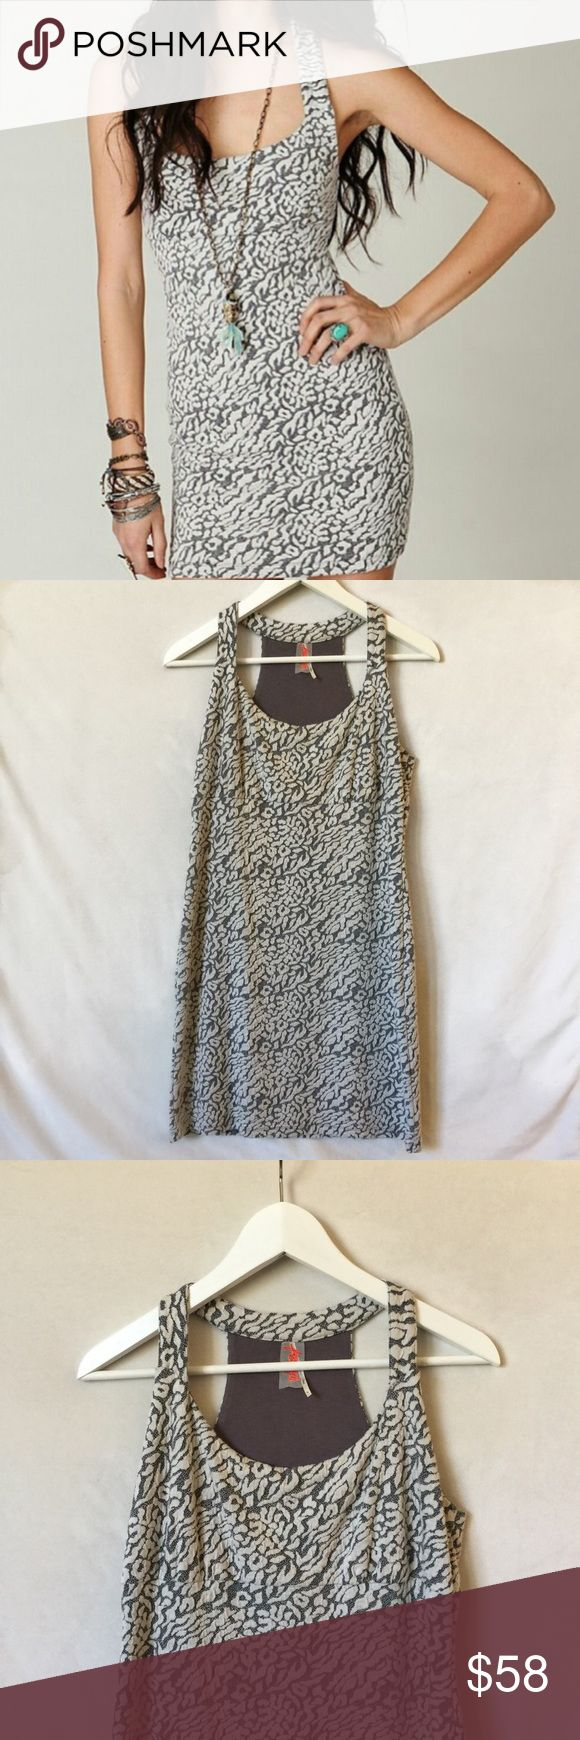 """Free People Animal Print Body-con Dress Soft and stretchy bodycon dress from Free People. Racerback and empire waist make this a flattering bodycon. Measures approx 15.5"""" from arm to arm pit and 33"""" in length. Excellent condition. Free People Dresses Mini"""